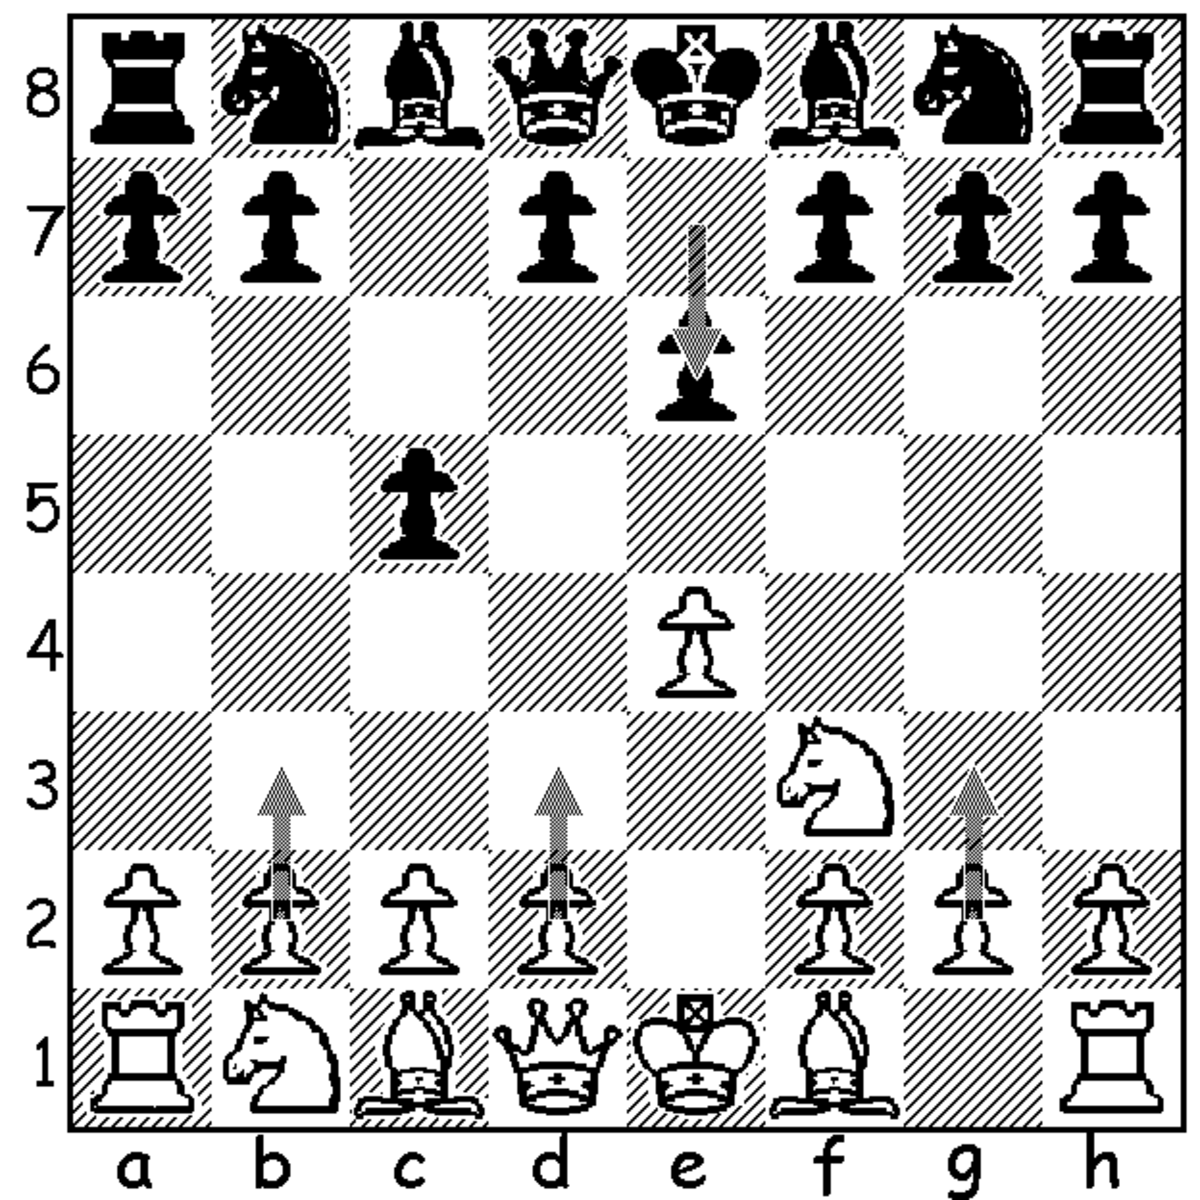 This image shows the three third move alternatives to the Open Sicilian (3.d4) that can be played against 2...e6 in the Sicilian Defense. They are 3.b3, 3.d3 and 3.g3.